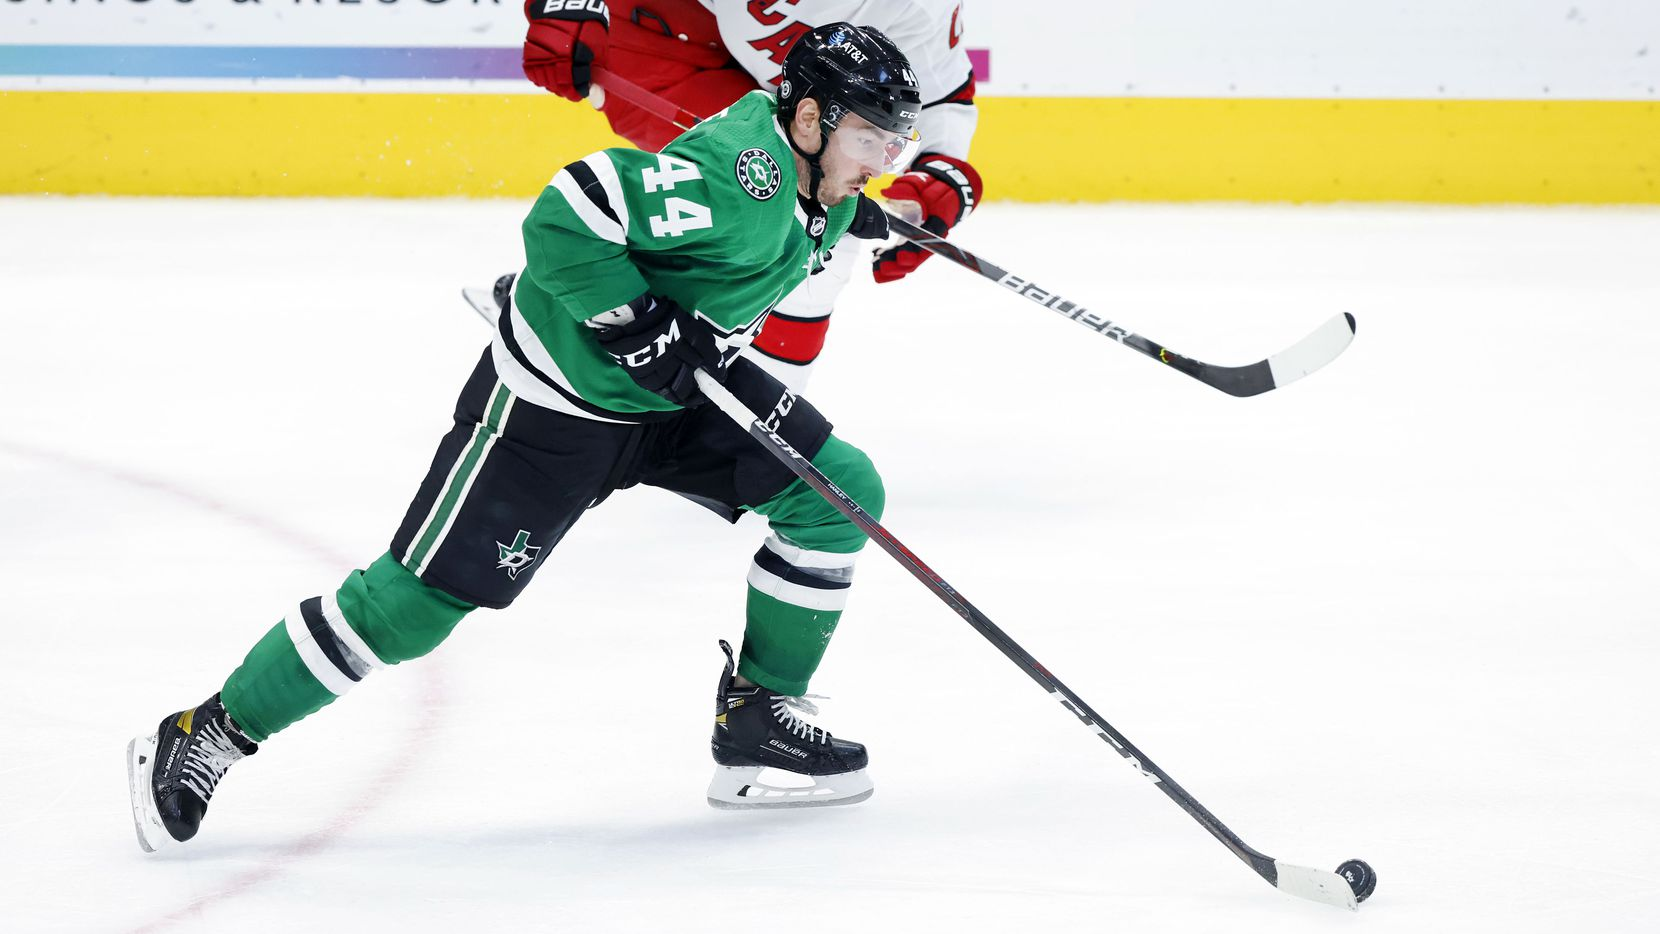 Dallas Stars defenseman Joel Hanley (44) races with the puck as Carolina Hurricanes right wing Nino Niederreiter (21) gives pursuit during the third period at the American Airlines Center in Dallas, Tuesday, April 27, 2021. The Stars lost, 5-1.